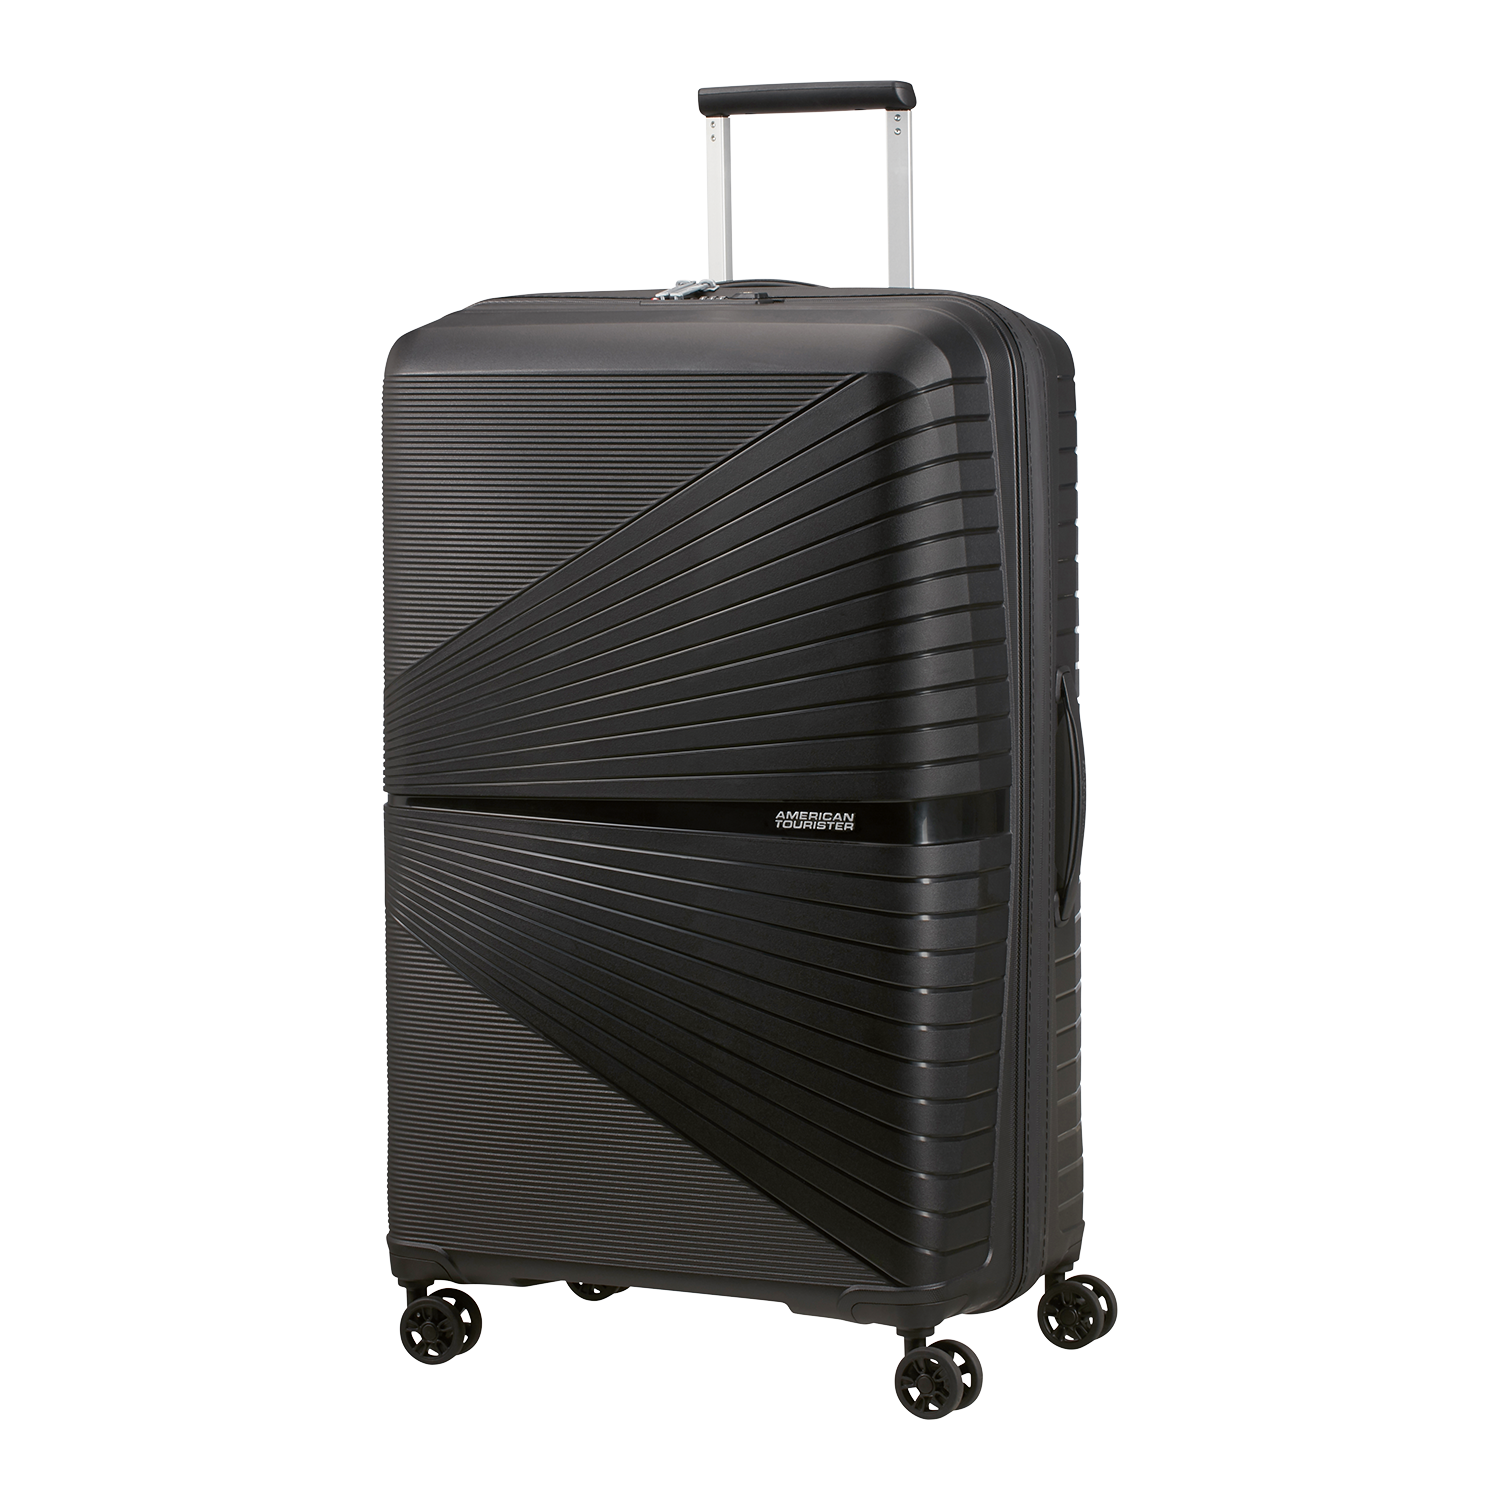 American Tourister Airconic Trolley 77, Onyx Black